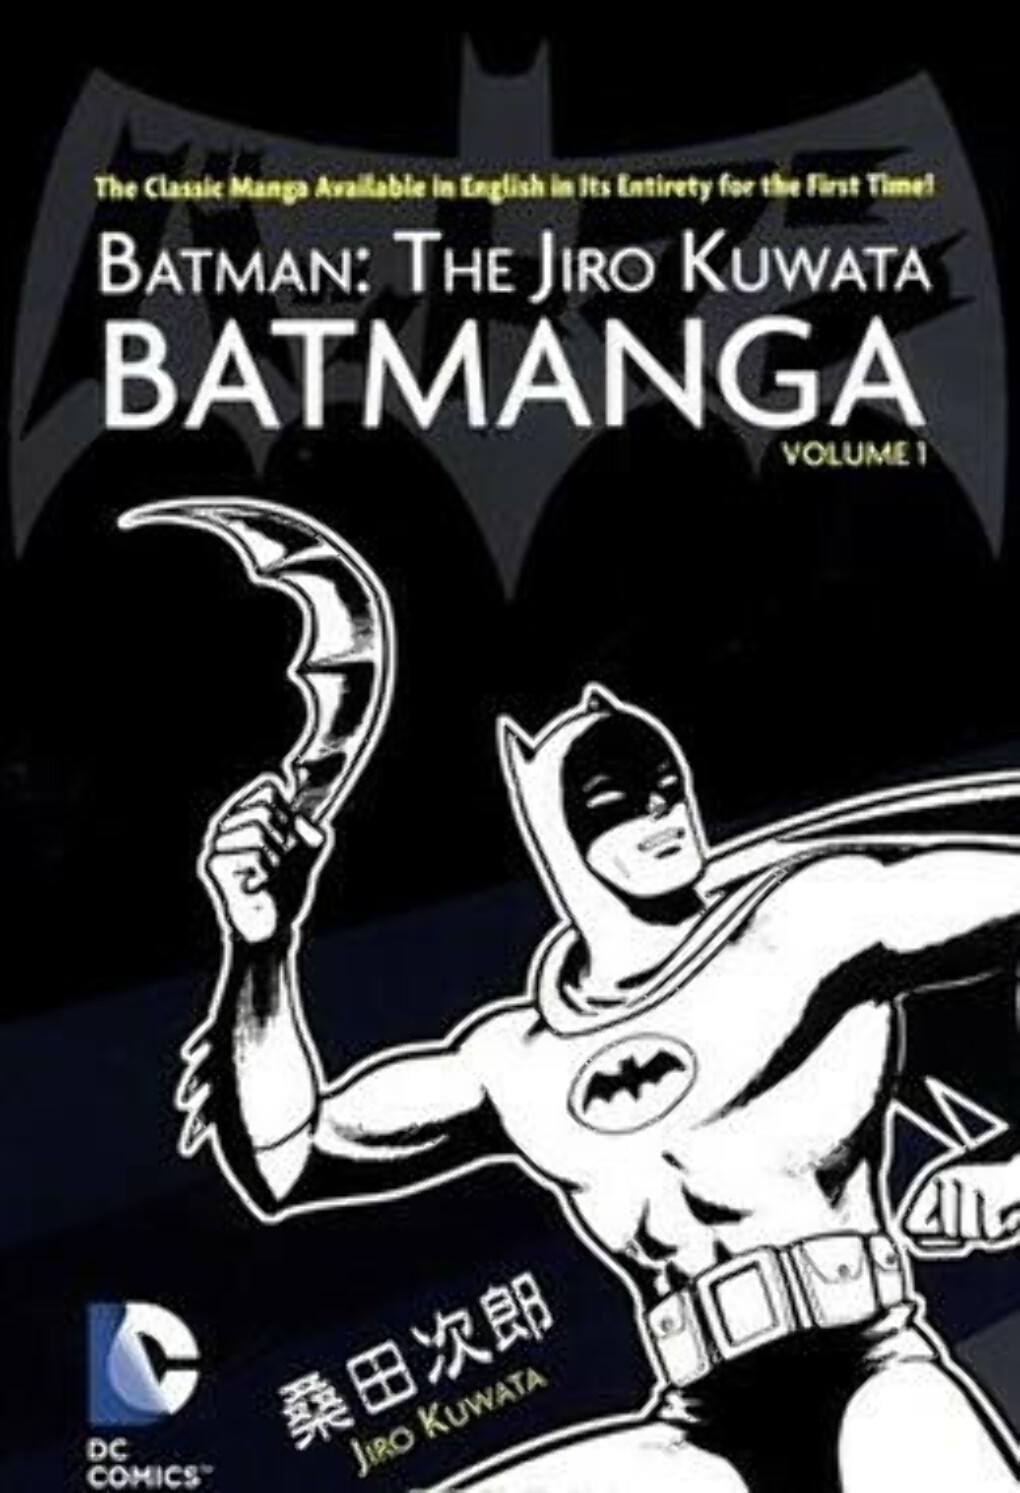 Batman: The Jiro Kuwata Batmanga. Vol. 1